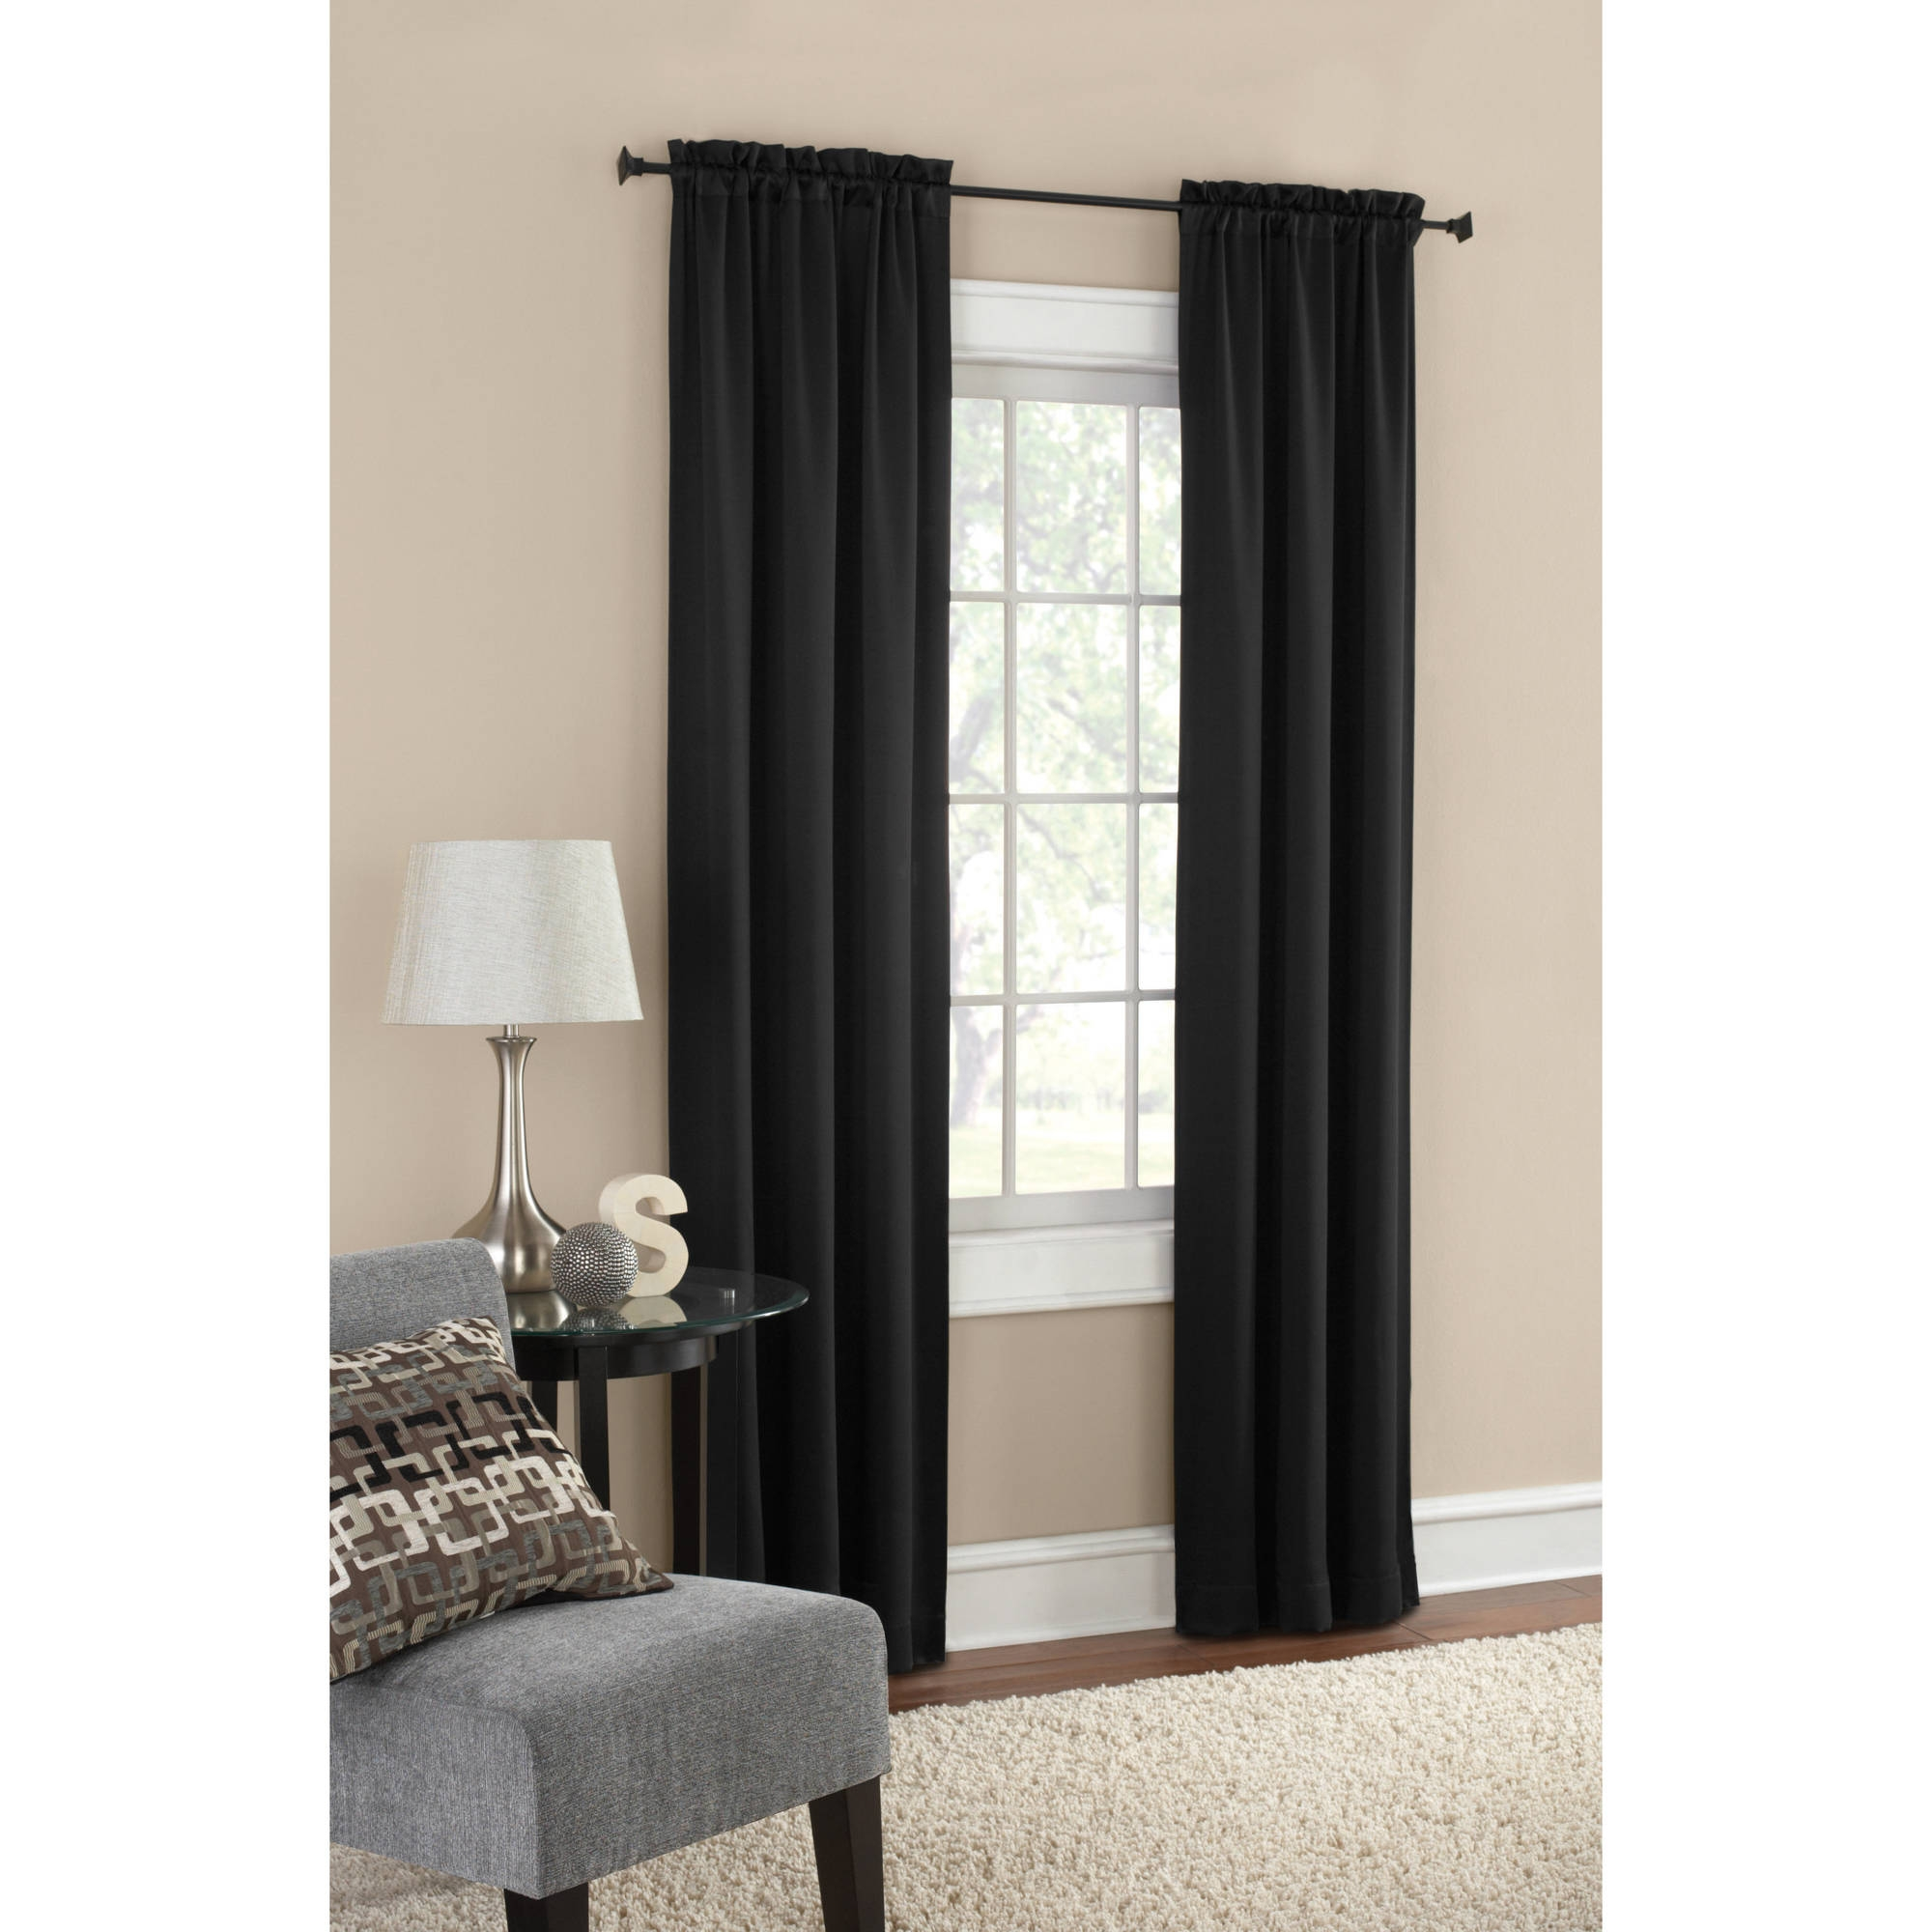 Energy Efficient Blackout Curtains Walmart Intended For Thermal Bedroom Curtains (Image 9 of 15)